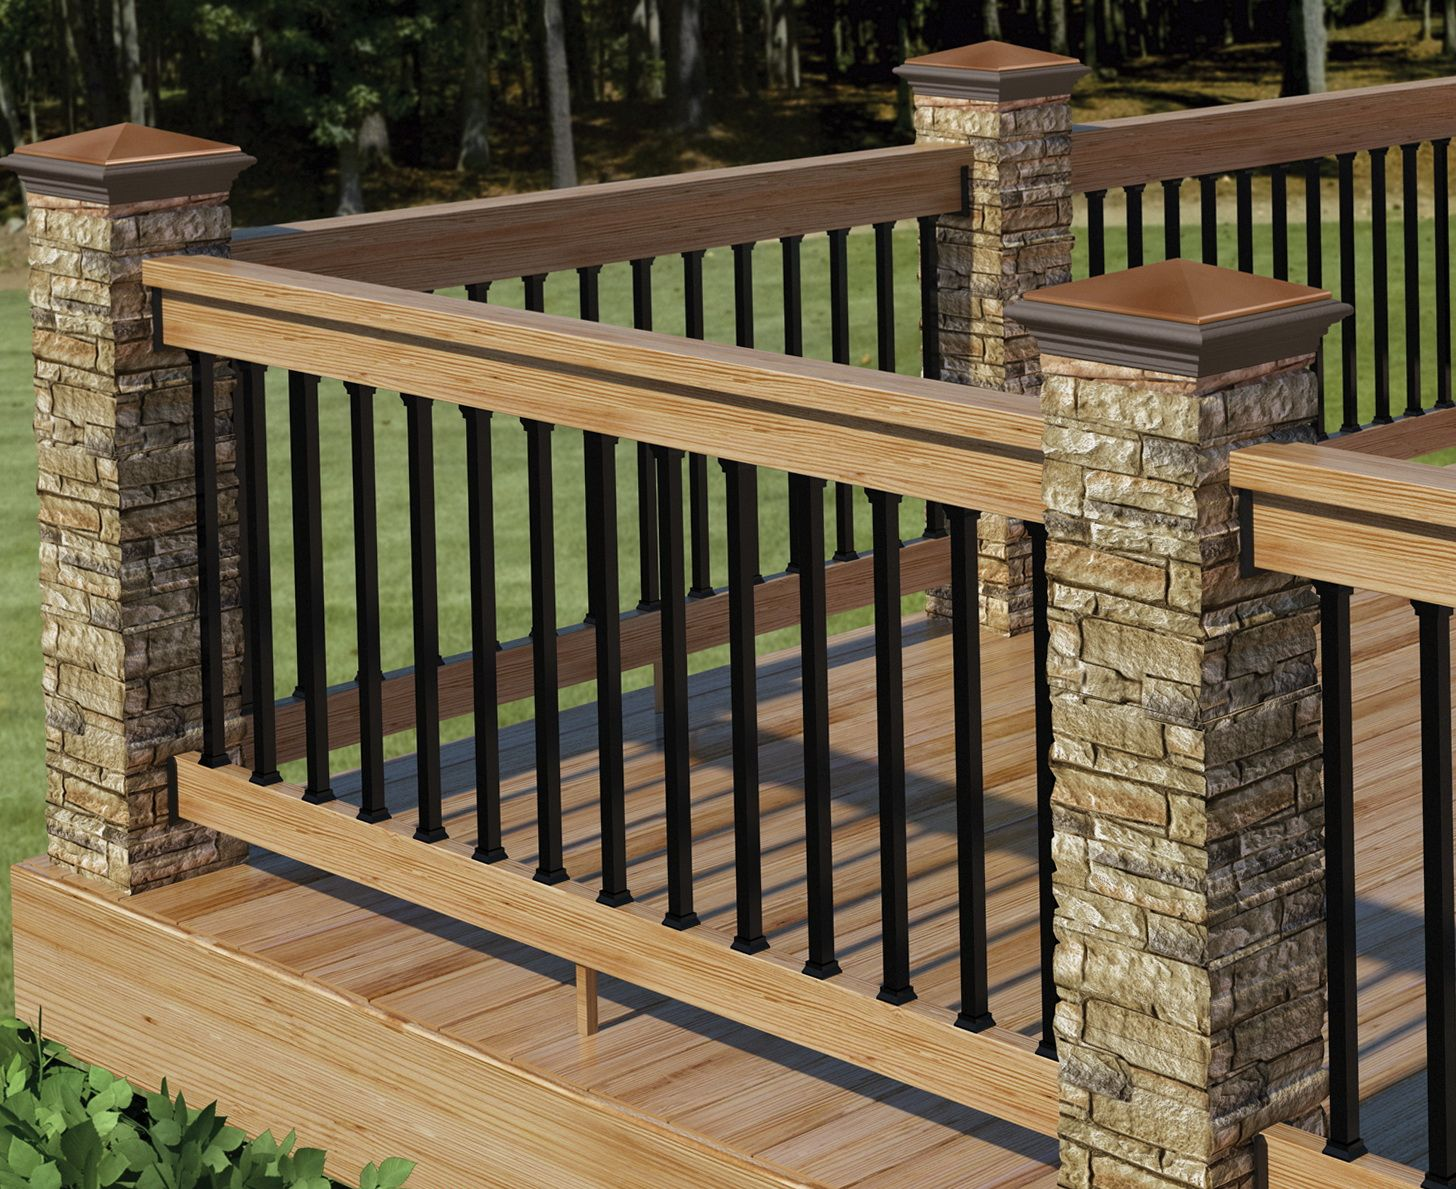 Best Deck Railing Design Ideas Pictures Jpg 1456×1189 Deck 400 x 300